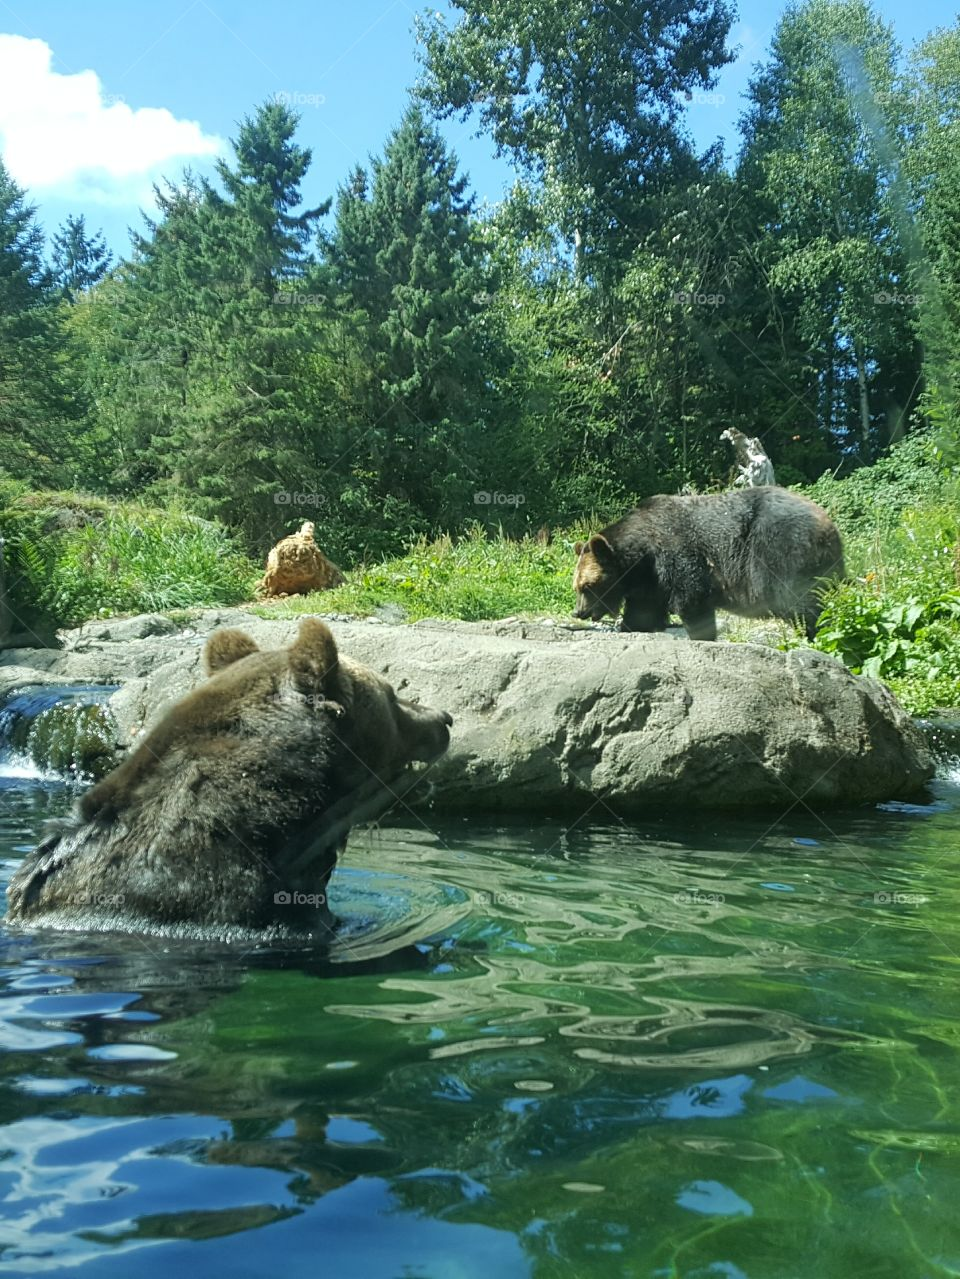 grizzly exhibit